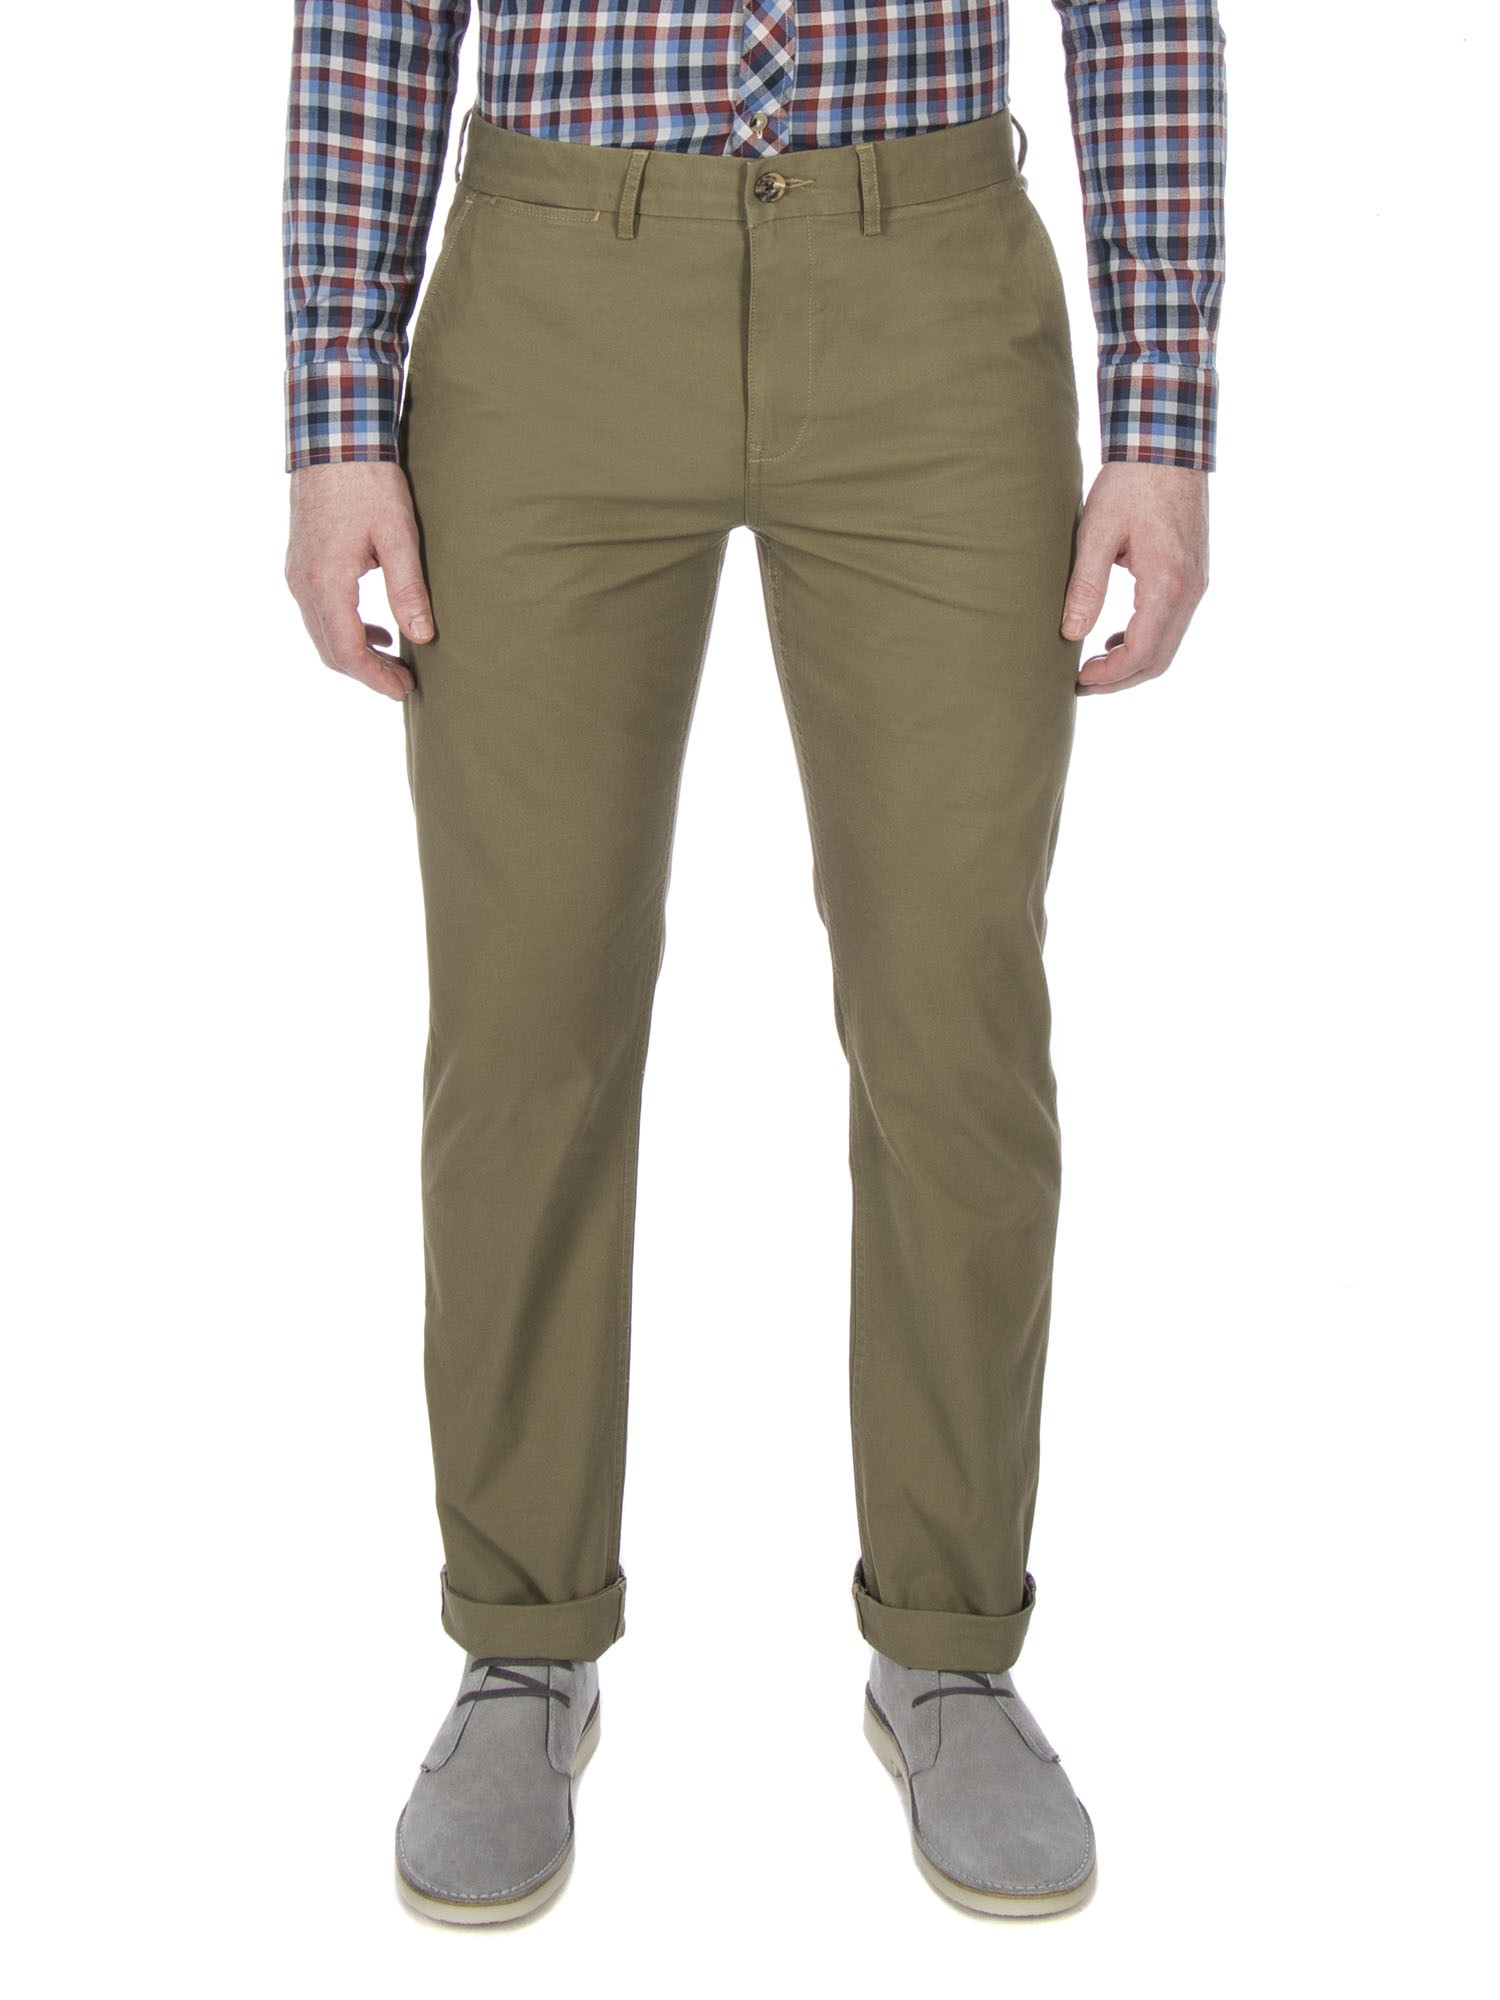 Ben Sherman Capers Slim Stretch Chino